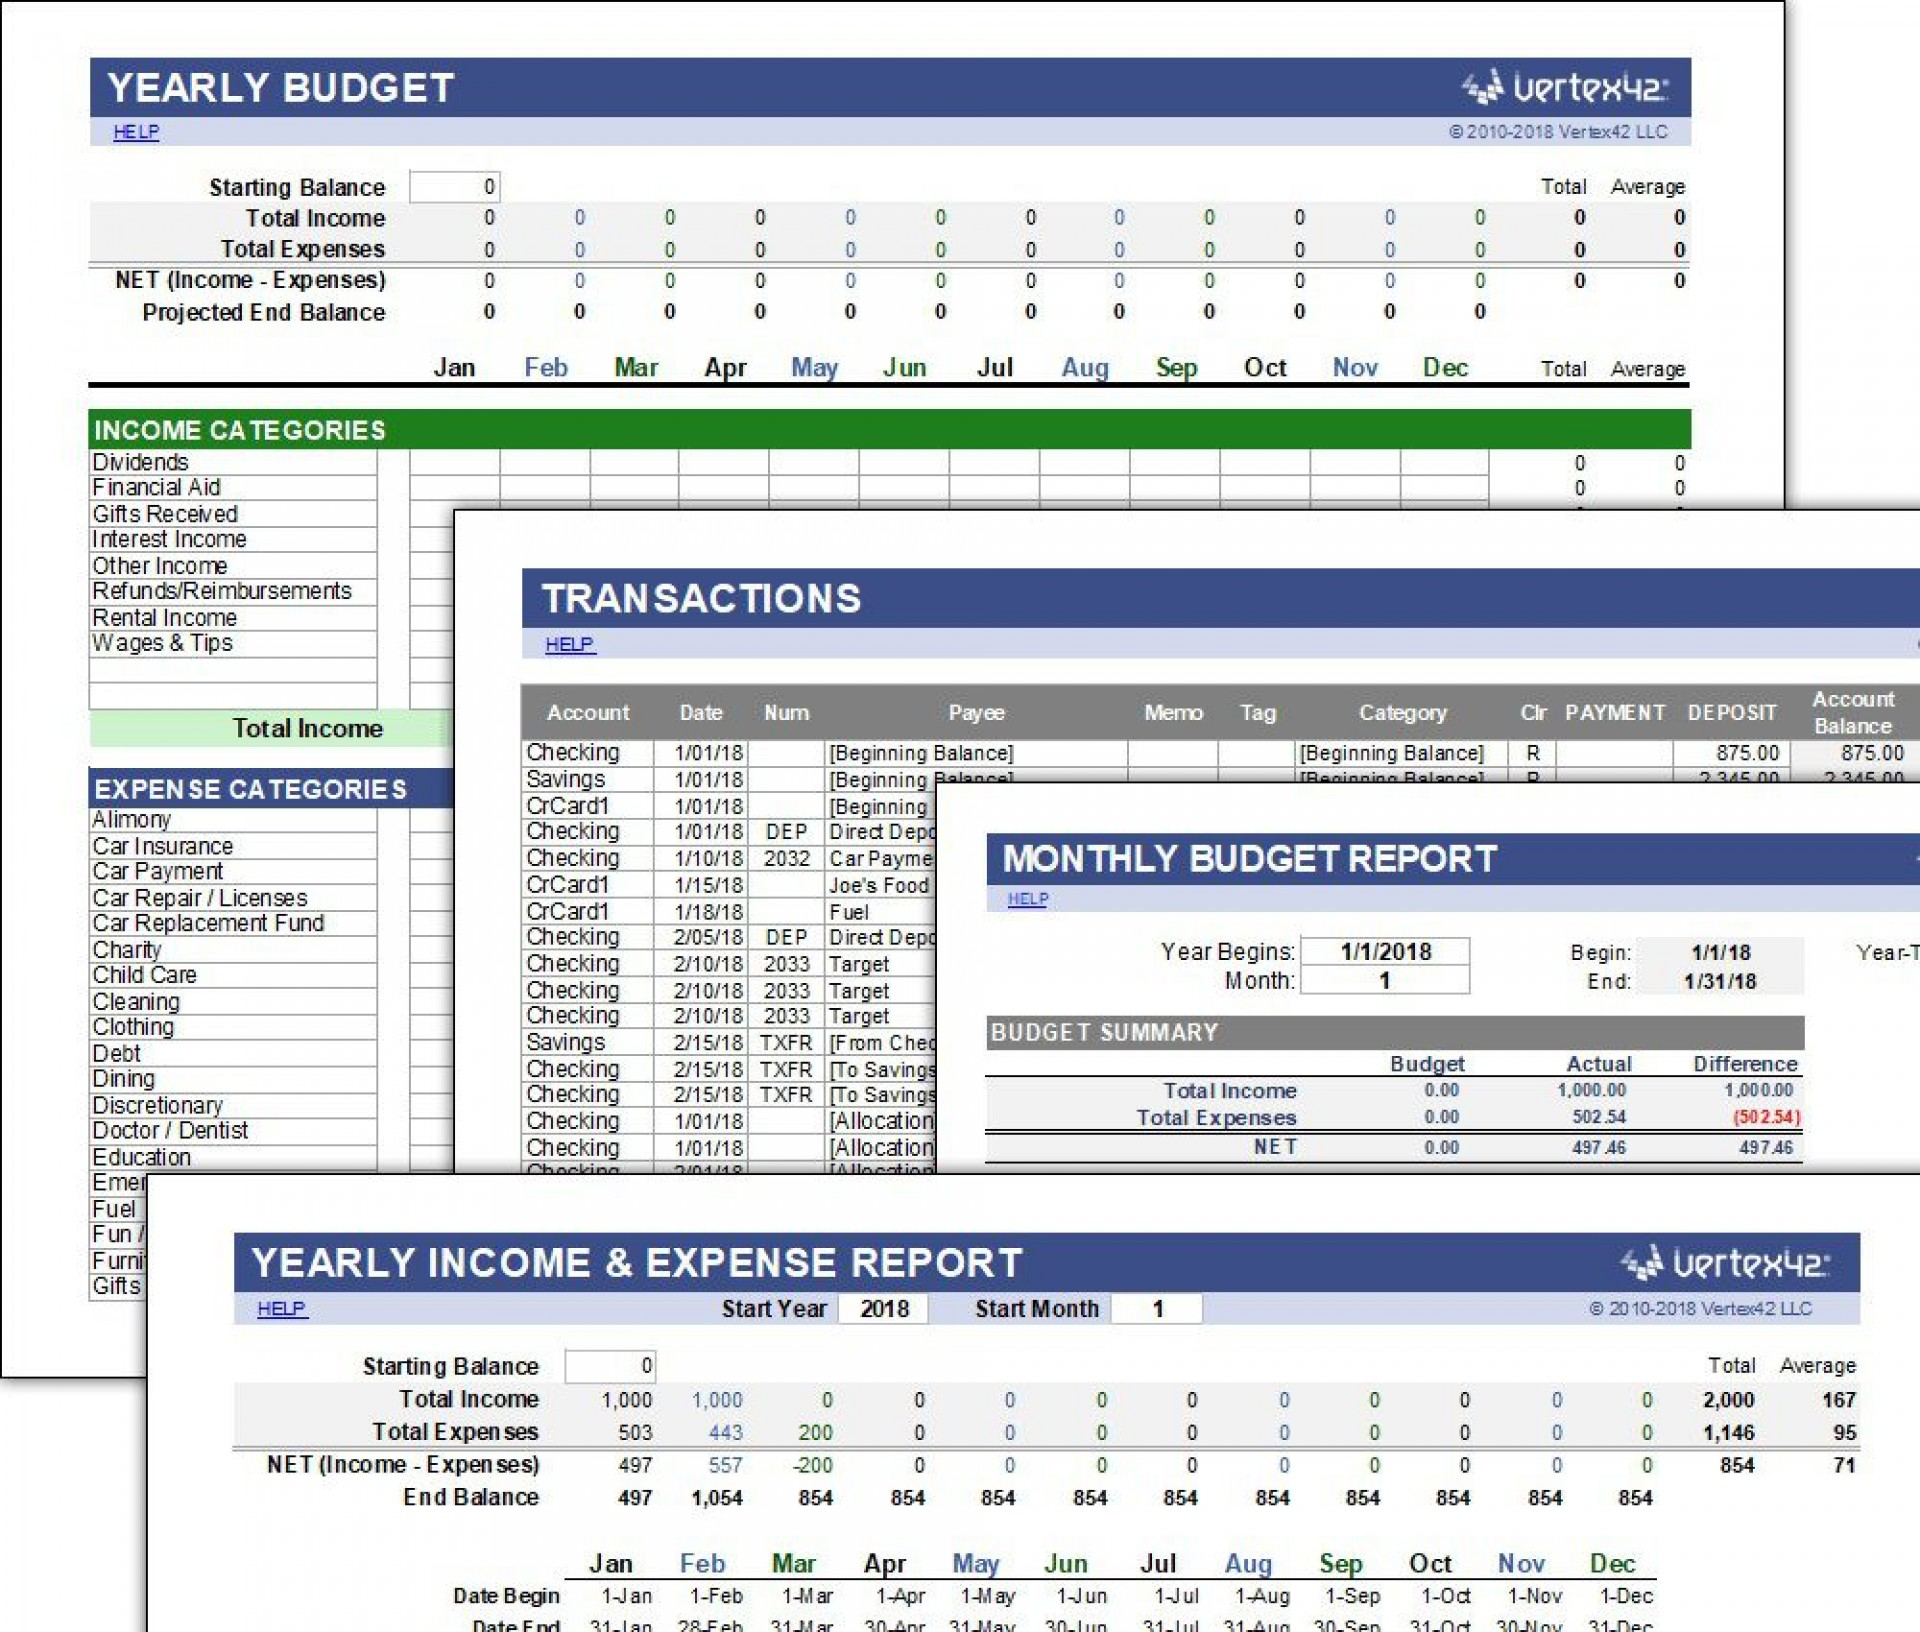 009 Phenomenal Annual Busines Budget Template Excel Image  Small Free1920